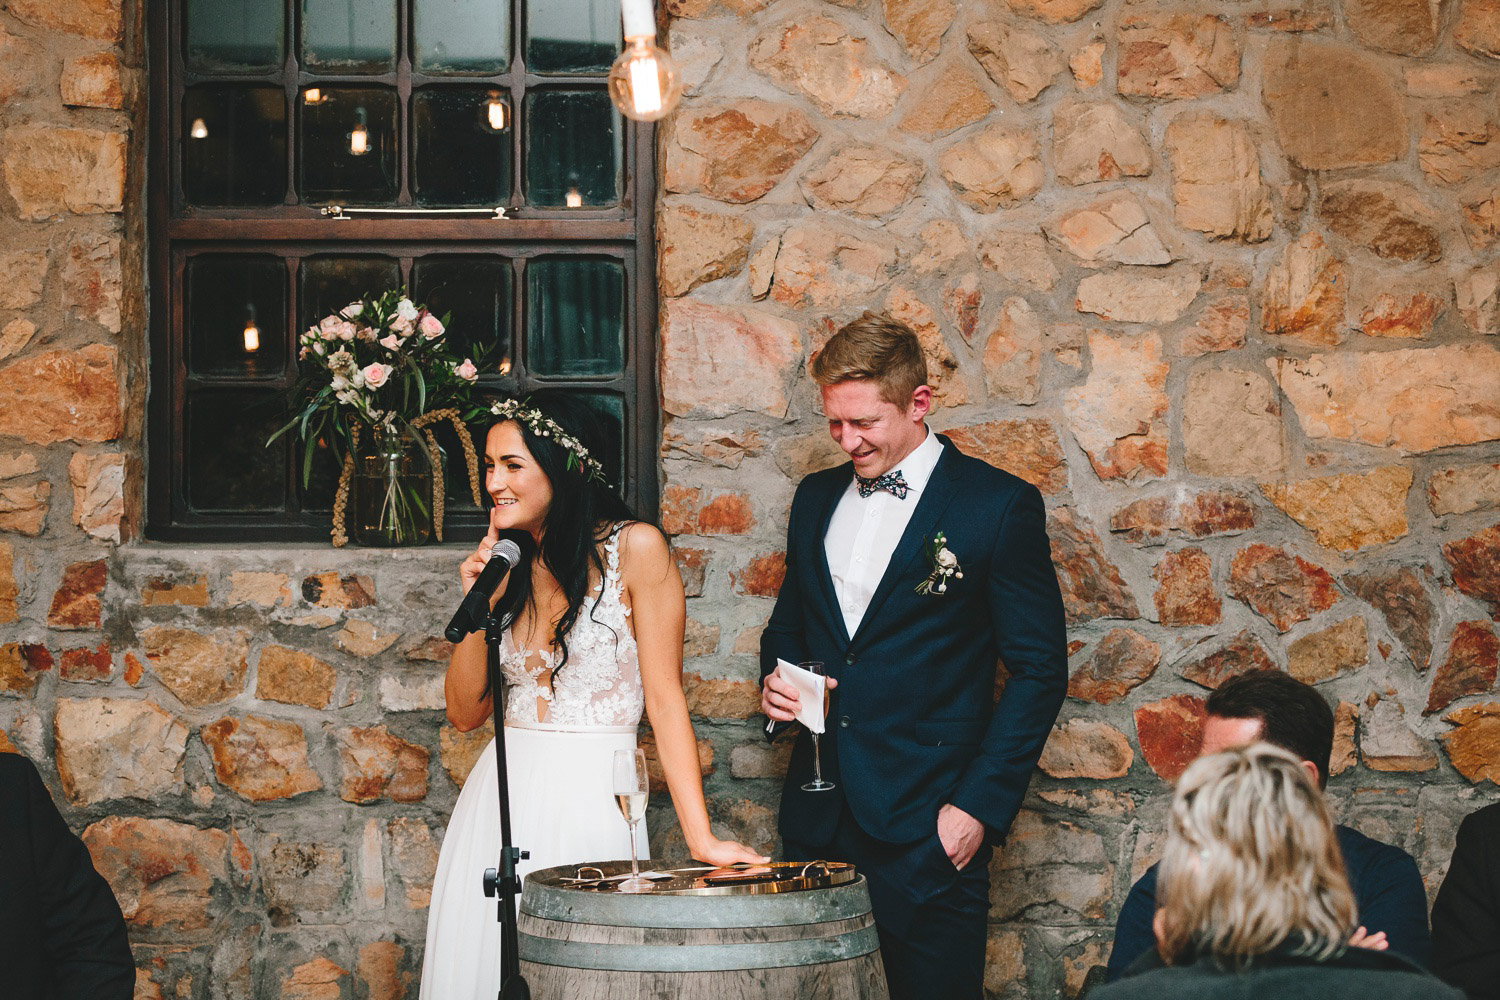 western-cape-photoghers-gen-scott-greyton-wedding-photography-charlie-ray167.jpg